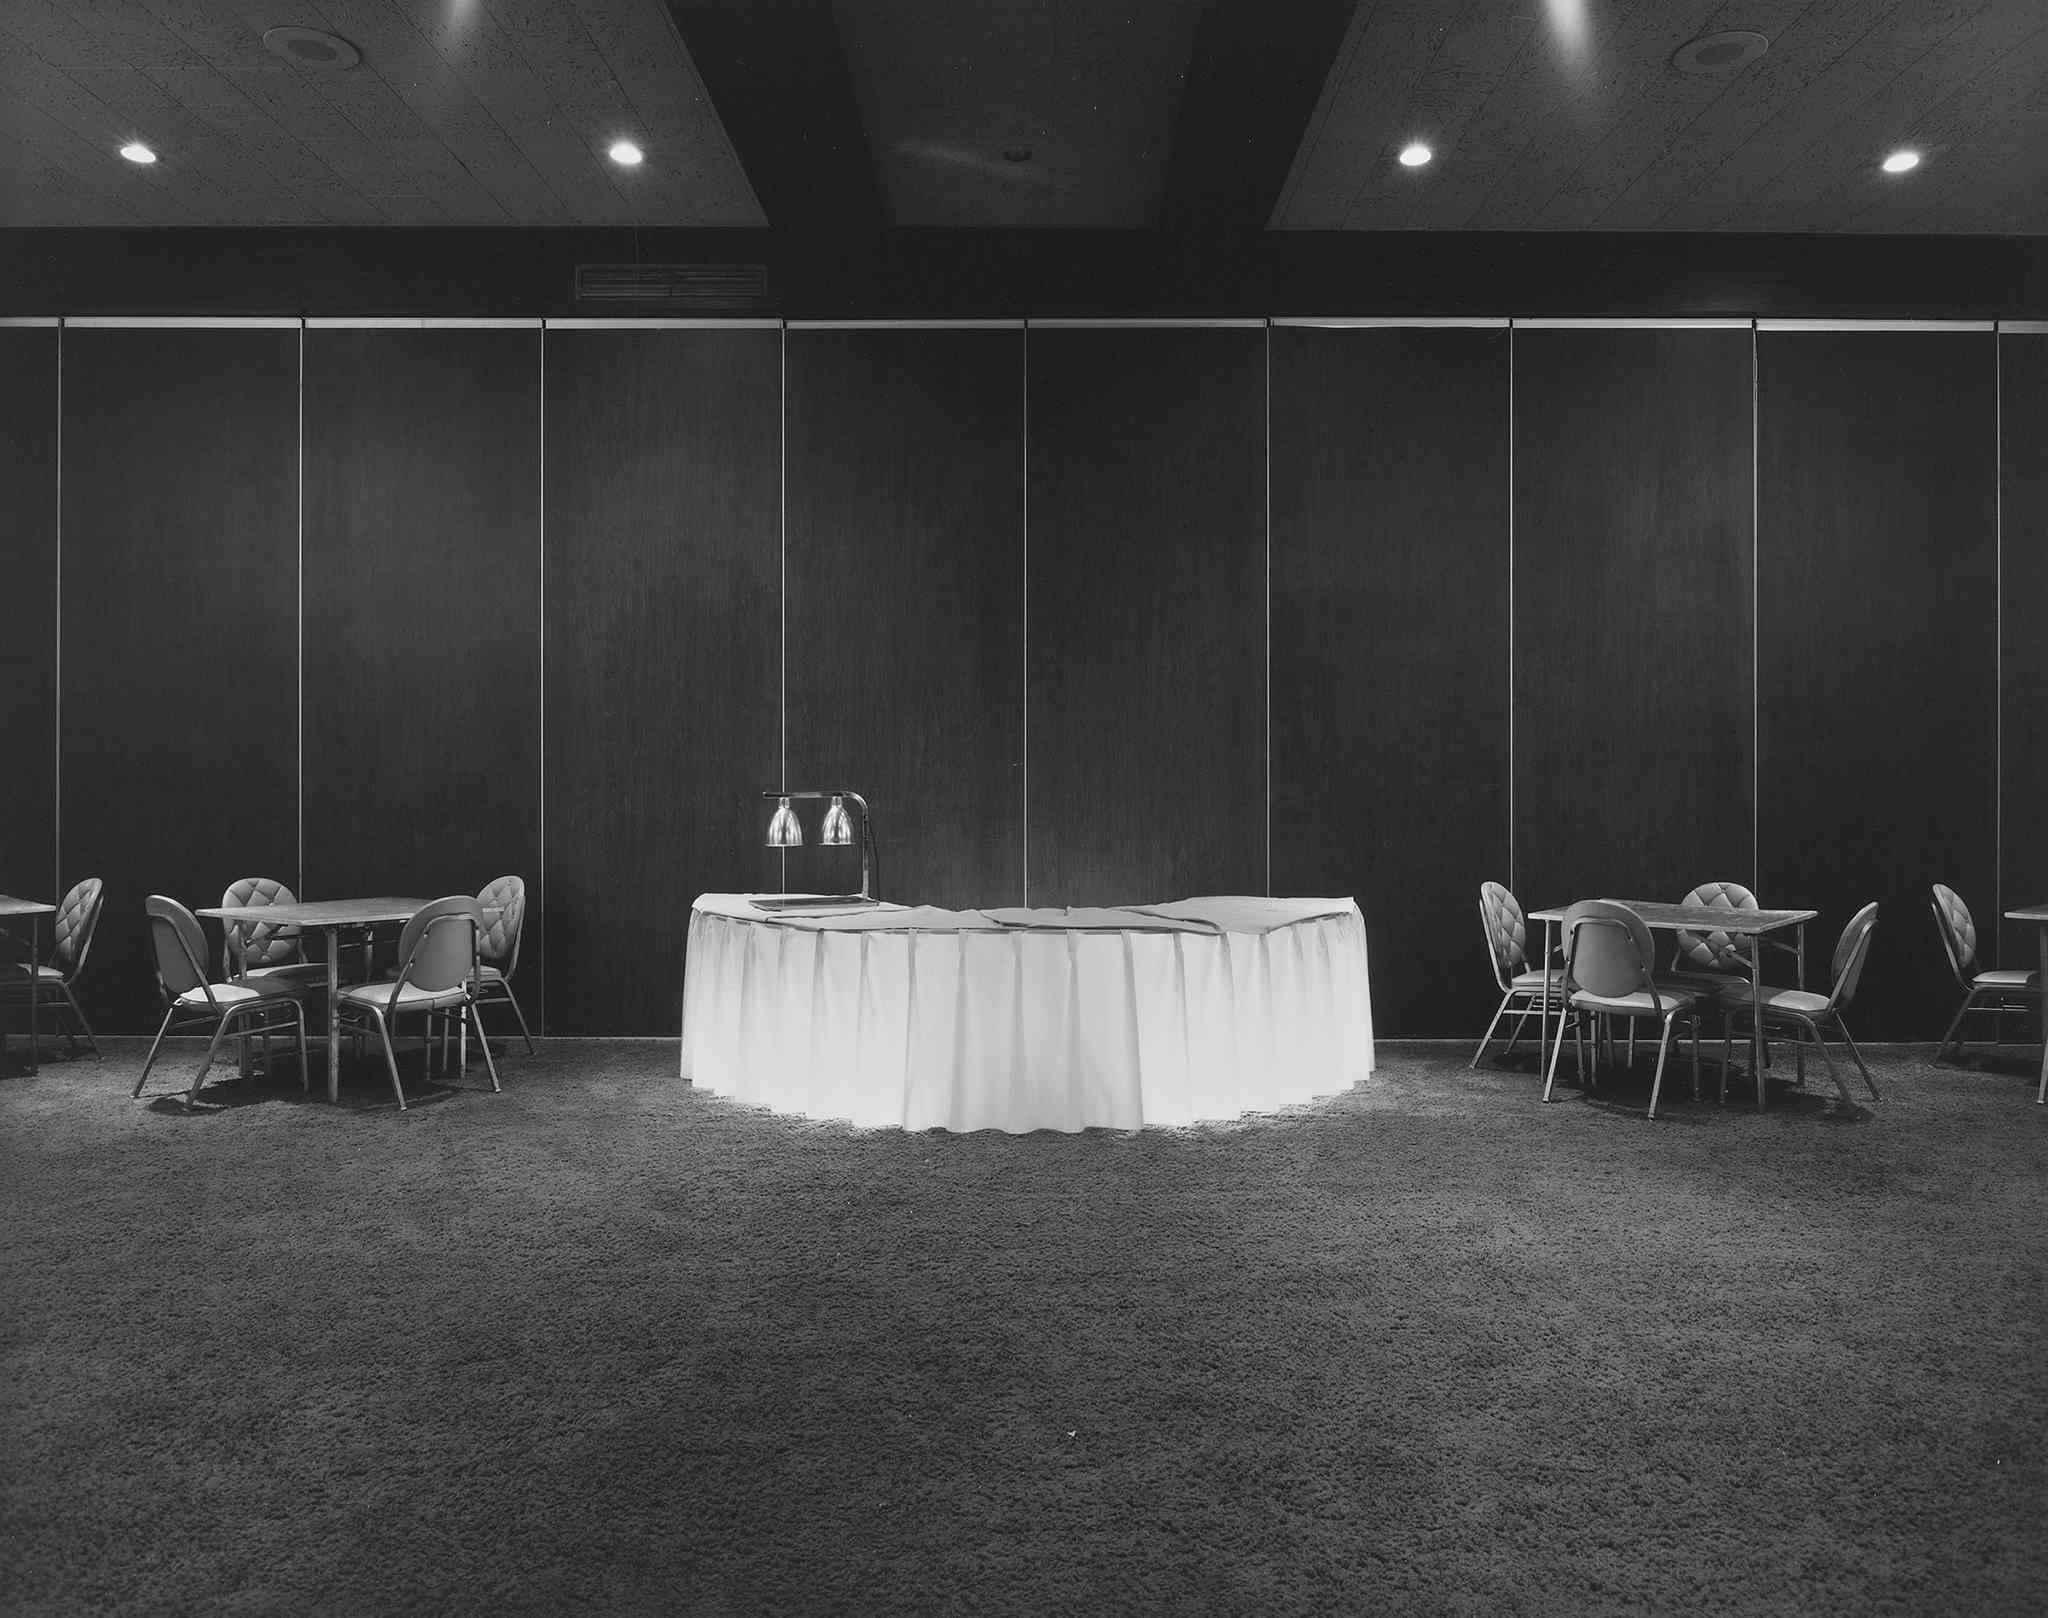 Lynne Cohen, Banquet hall, Howard Johnson's, Atlantic City, New Jersey, 1976 (printed 1986), gelatin silver print, 18.9 x 24 cm. National Gallery of Canada, Ottawa